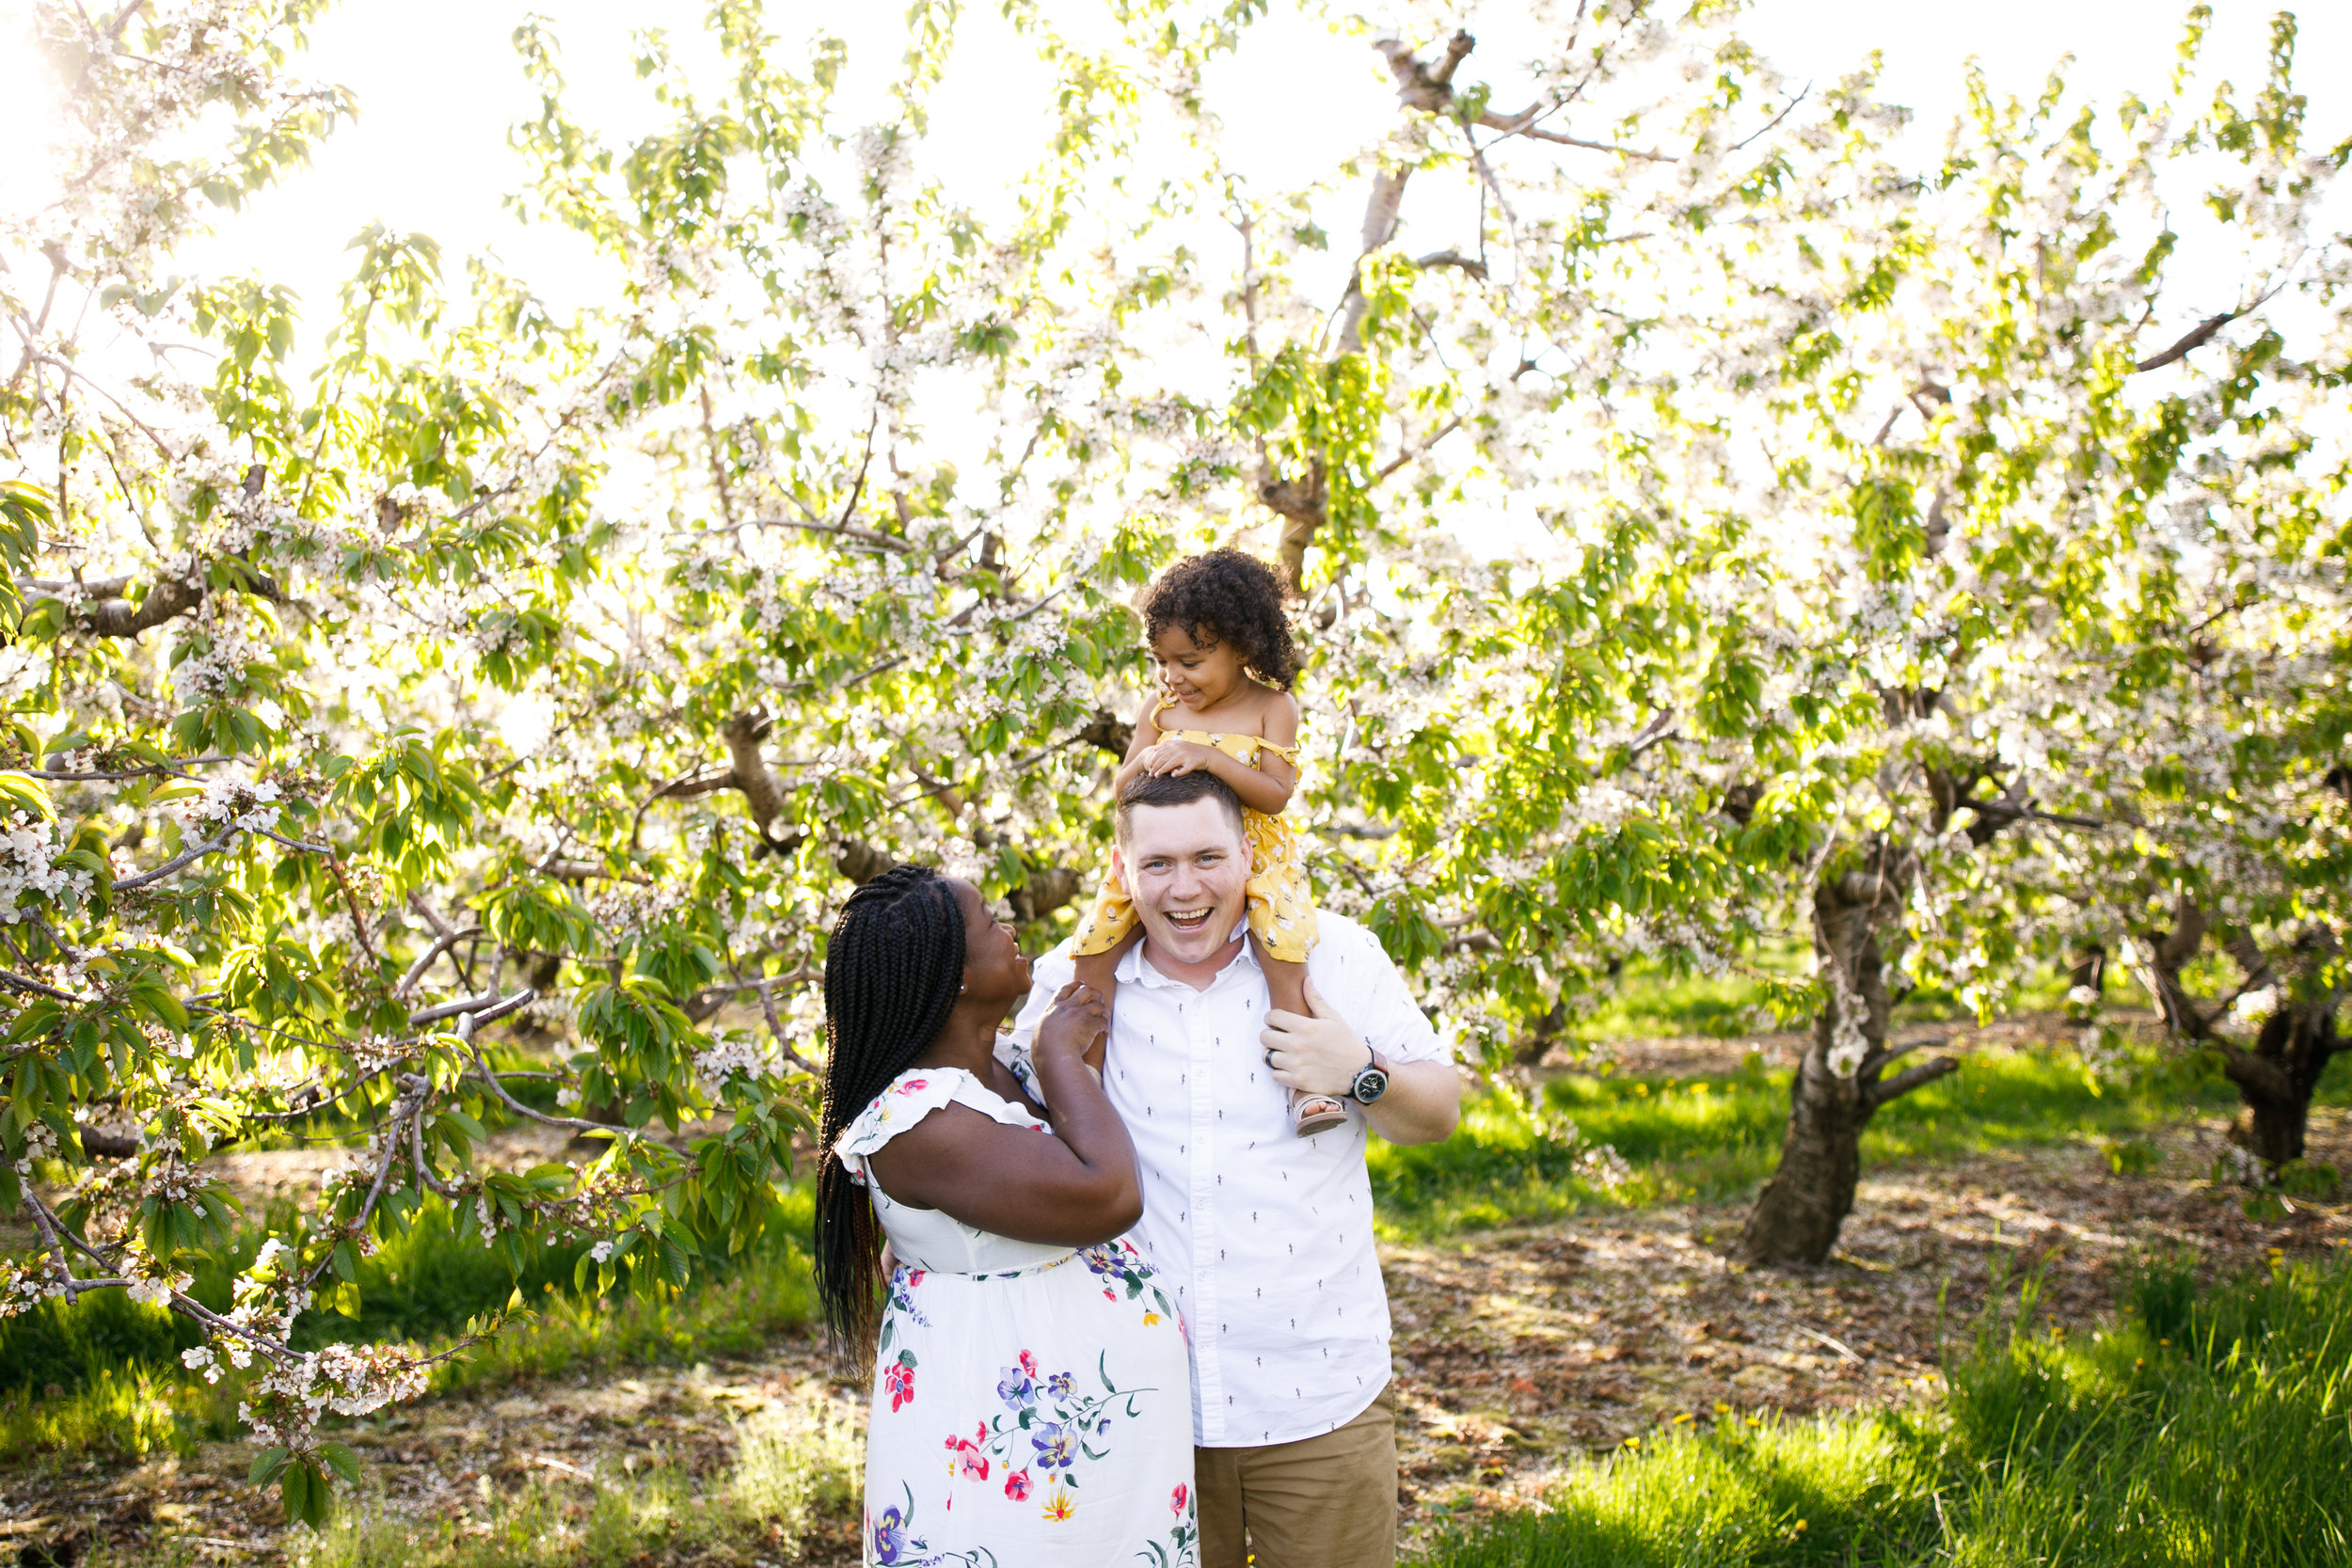 Grand Rapids family photographer - j darling photo - jessica darling - grand rapids photographer - family session - apple blossoms - sparta - michigan photographer004.jpg